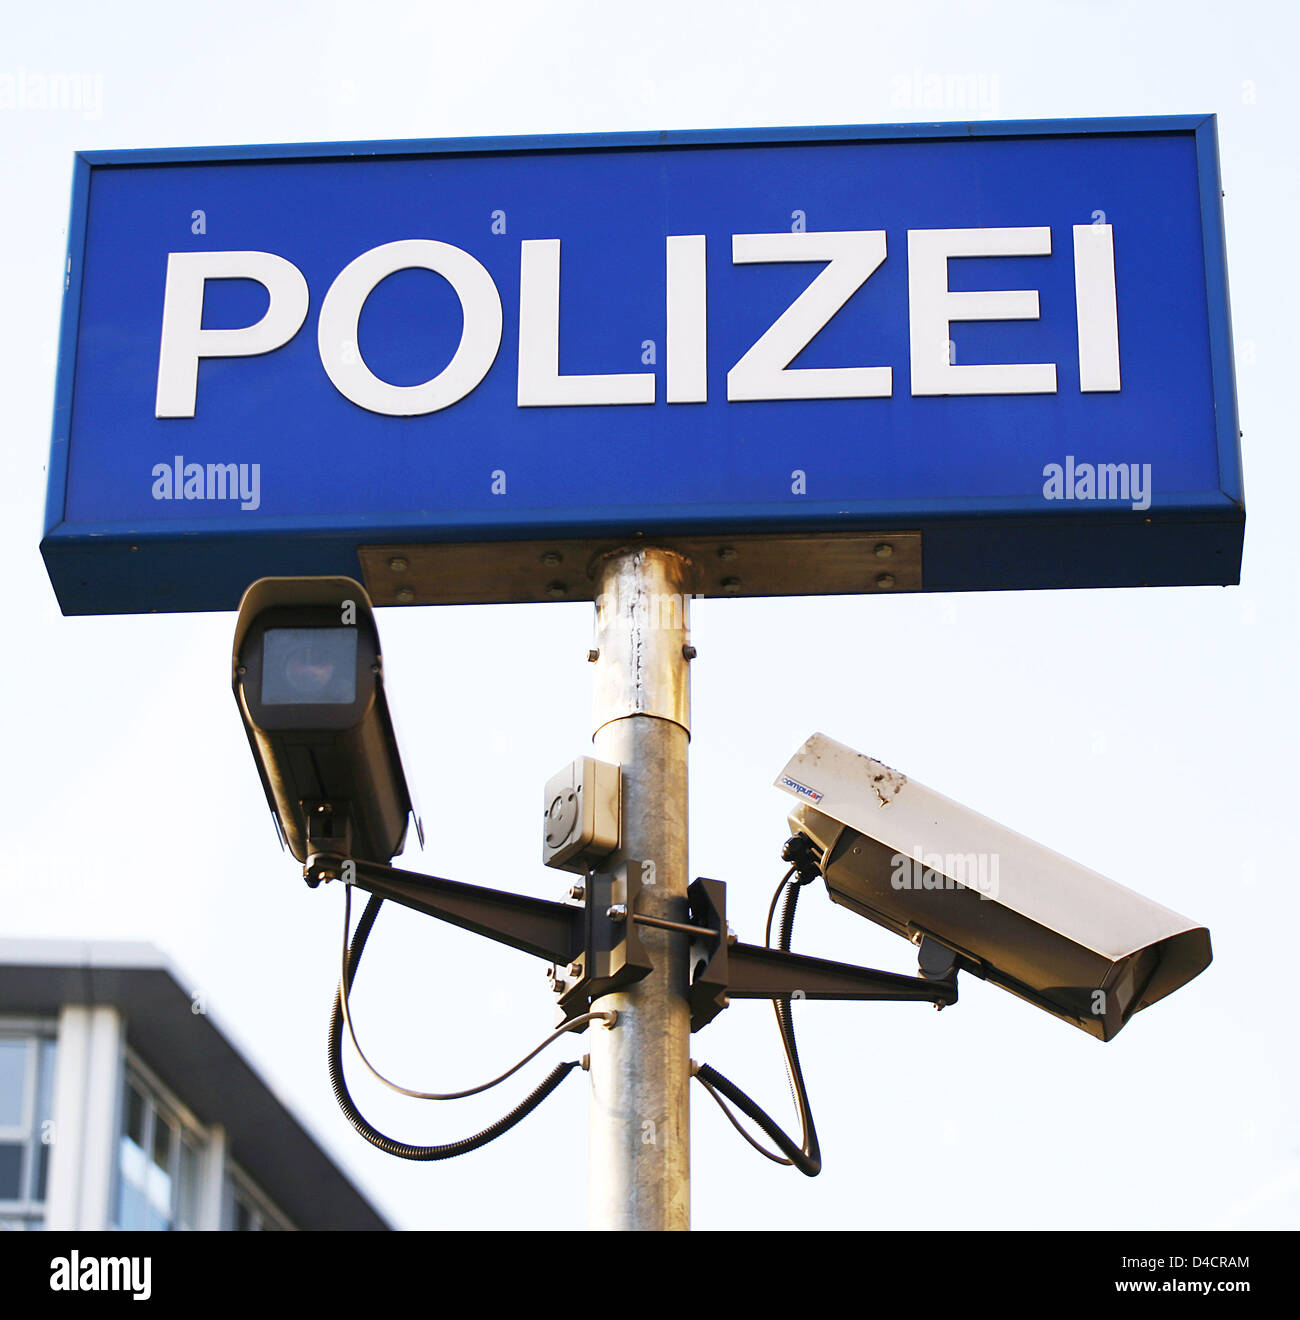 The picture shows surveillance cameras below a German police sign, in Frankfurt Main, Germany, 25 January 2008. - Stock Image